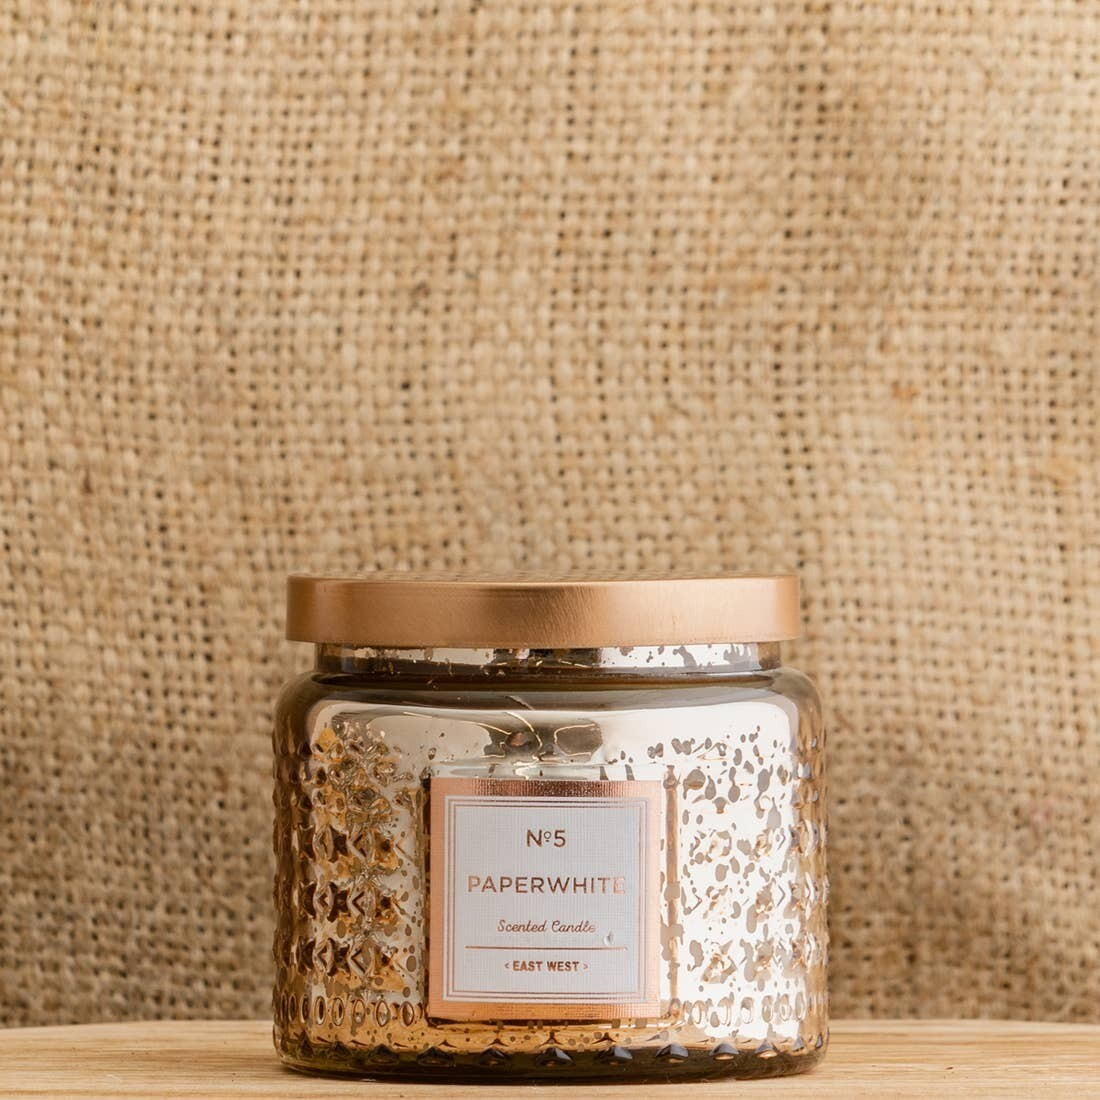 7.8 oz Paperwhite Candle